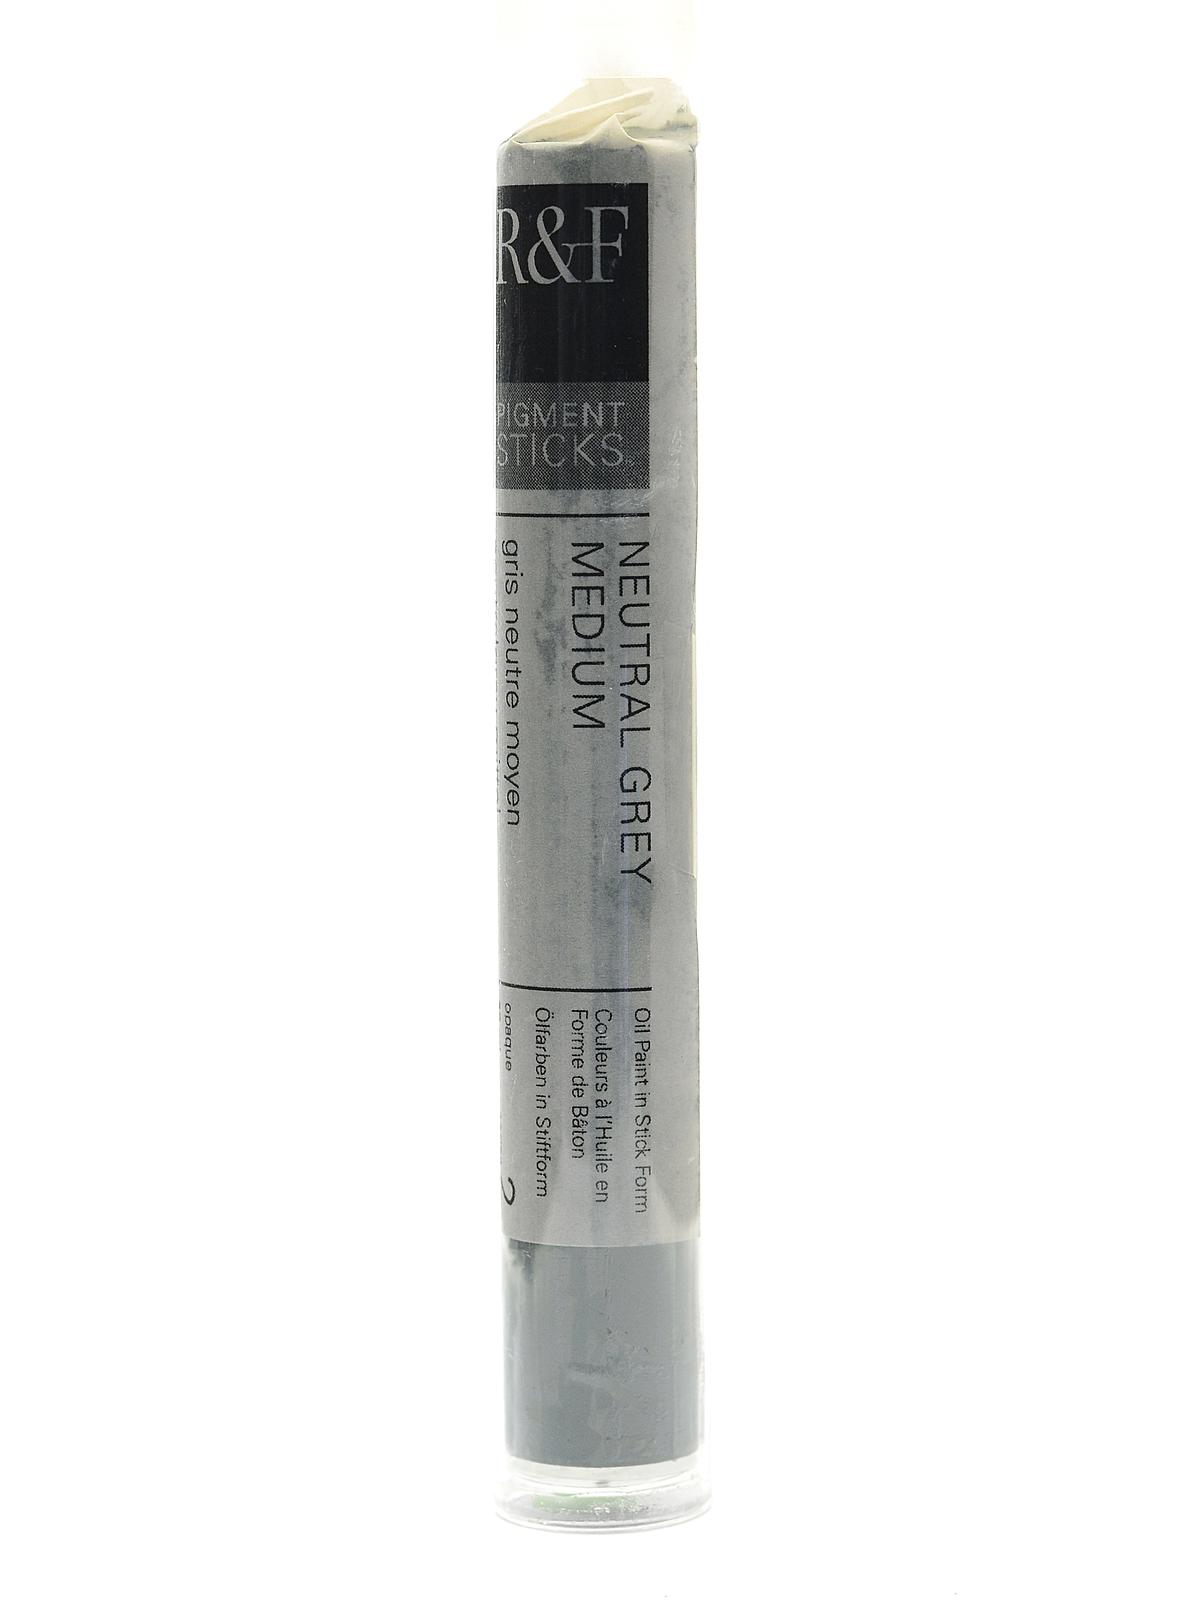 Pigment_Sticks_neutral_grey_medium_38_ml